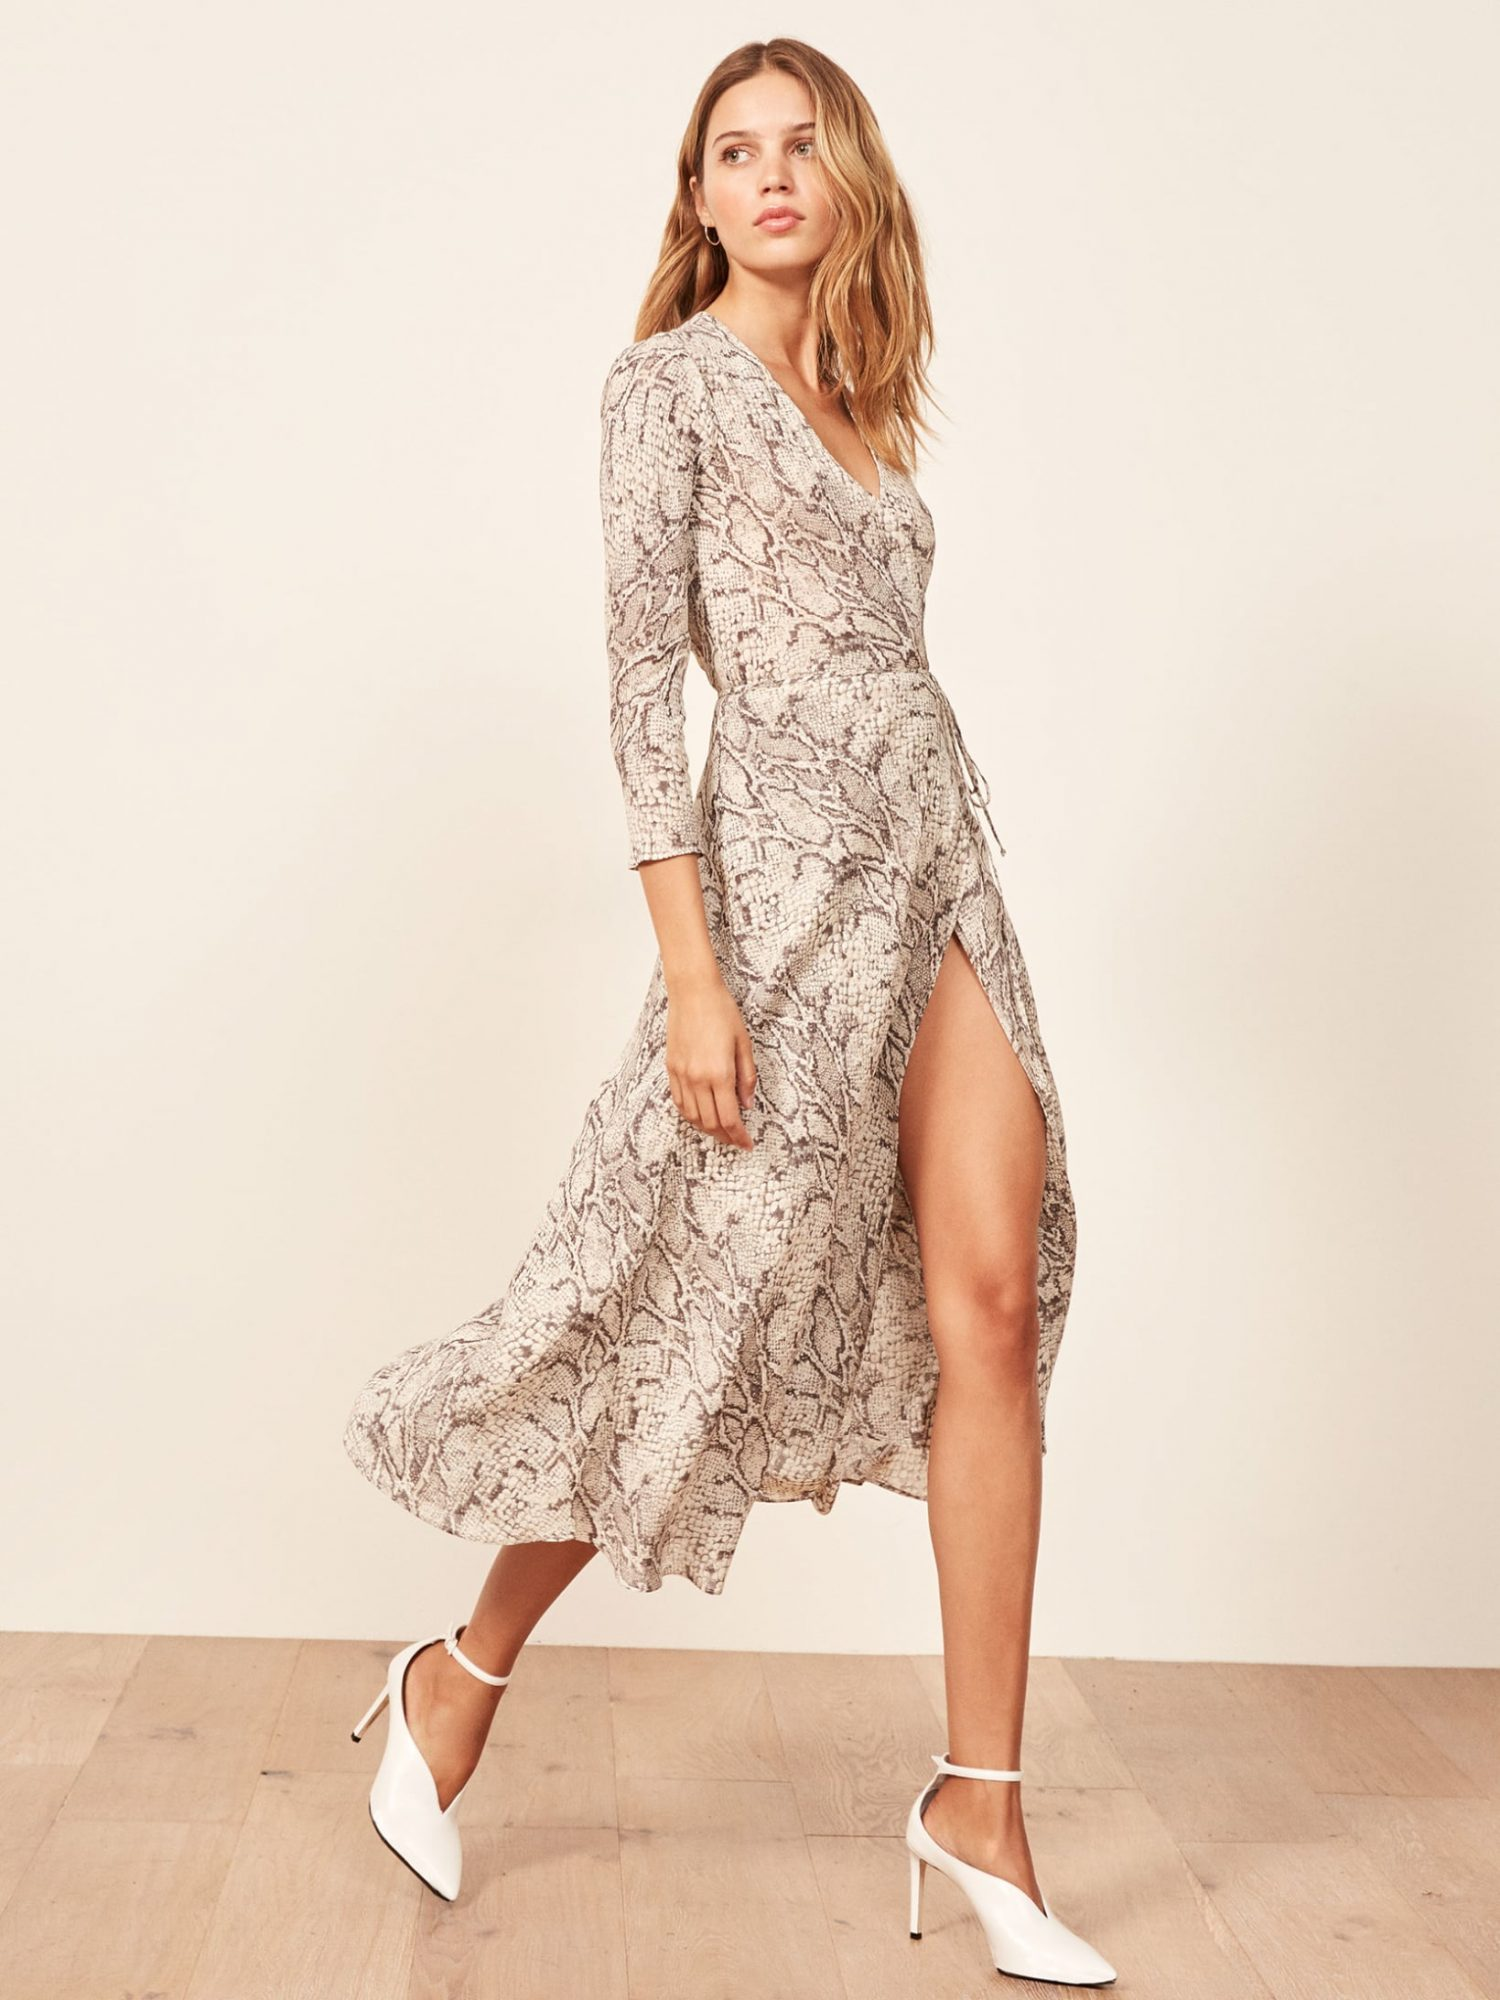 Reformation is Holding a Massive Sale on Nordstrom - Including Kelly Ripa's Birthday Dress